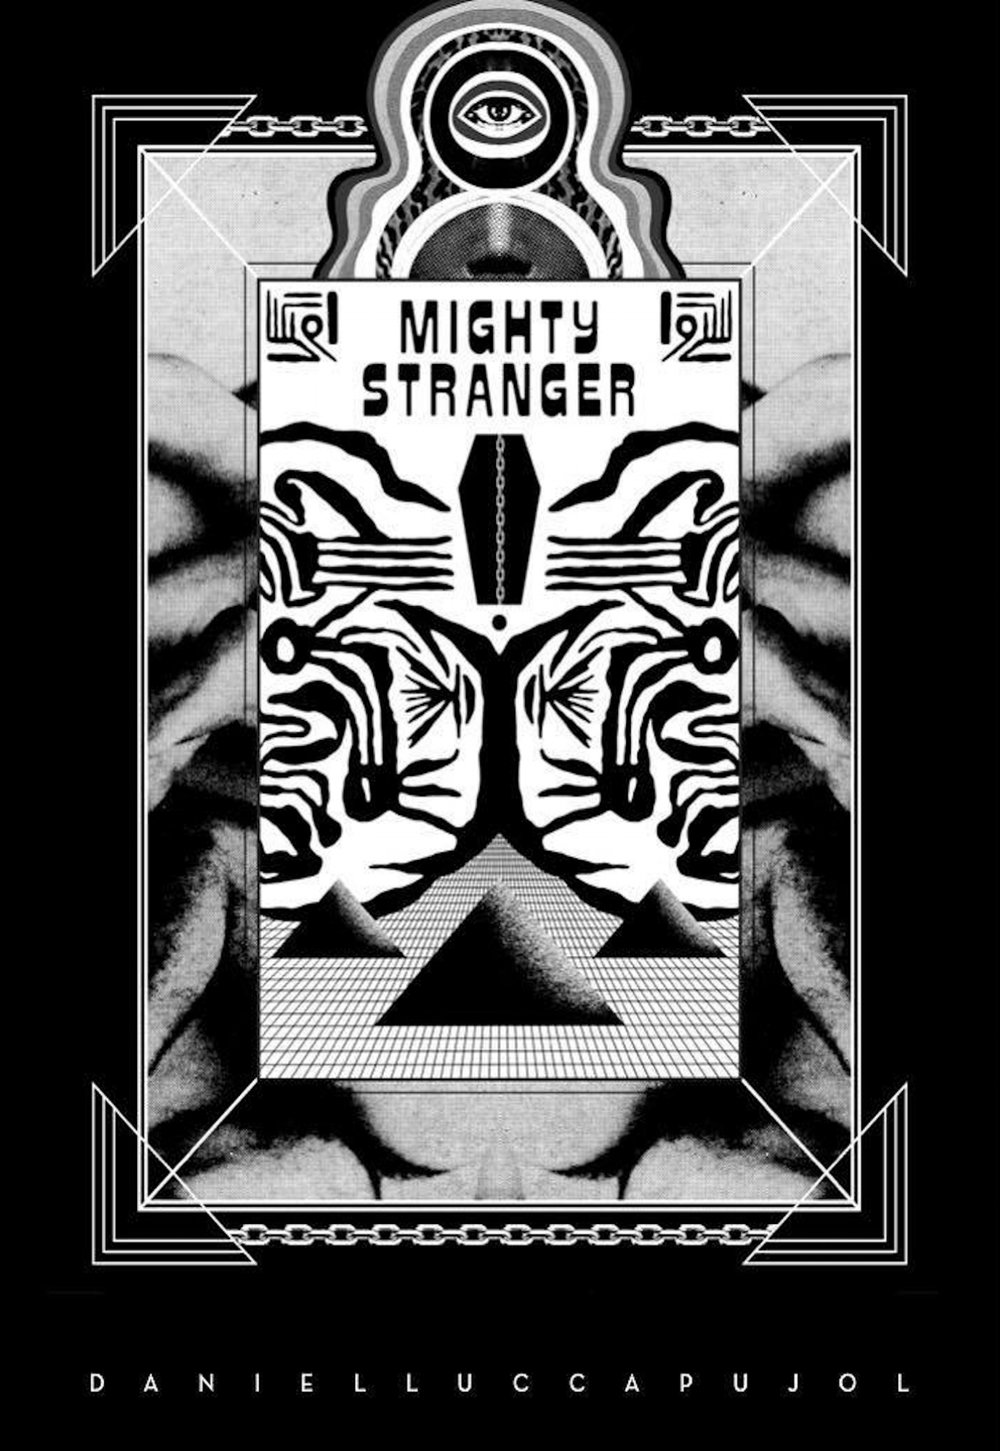 Mighty Stranger by Daniel Pujol   Pujol's debut chapbook Mighty Stranger experiments with the divergent imagination of eternality. The psychopomp has chosen Hermetic limbo over paradise, out of its element and able to manipulate the forces around it in a world that has already seen that trick done on its giant iPhone, the deity waxes existential, curious as to whether it's all a bad dream or the world is solely bad at dreaming. Pujol's anti-apocalyptic poems strive to answer impossible questions, to delineate impossible narratives, all while still being true to what it means to be alive and human in the 21st century.